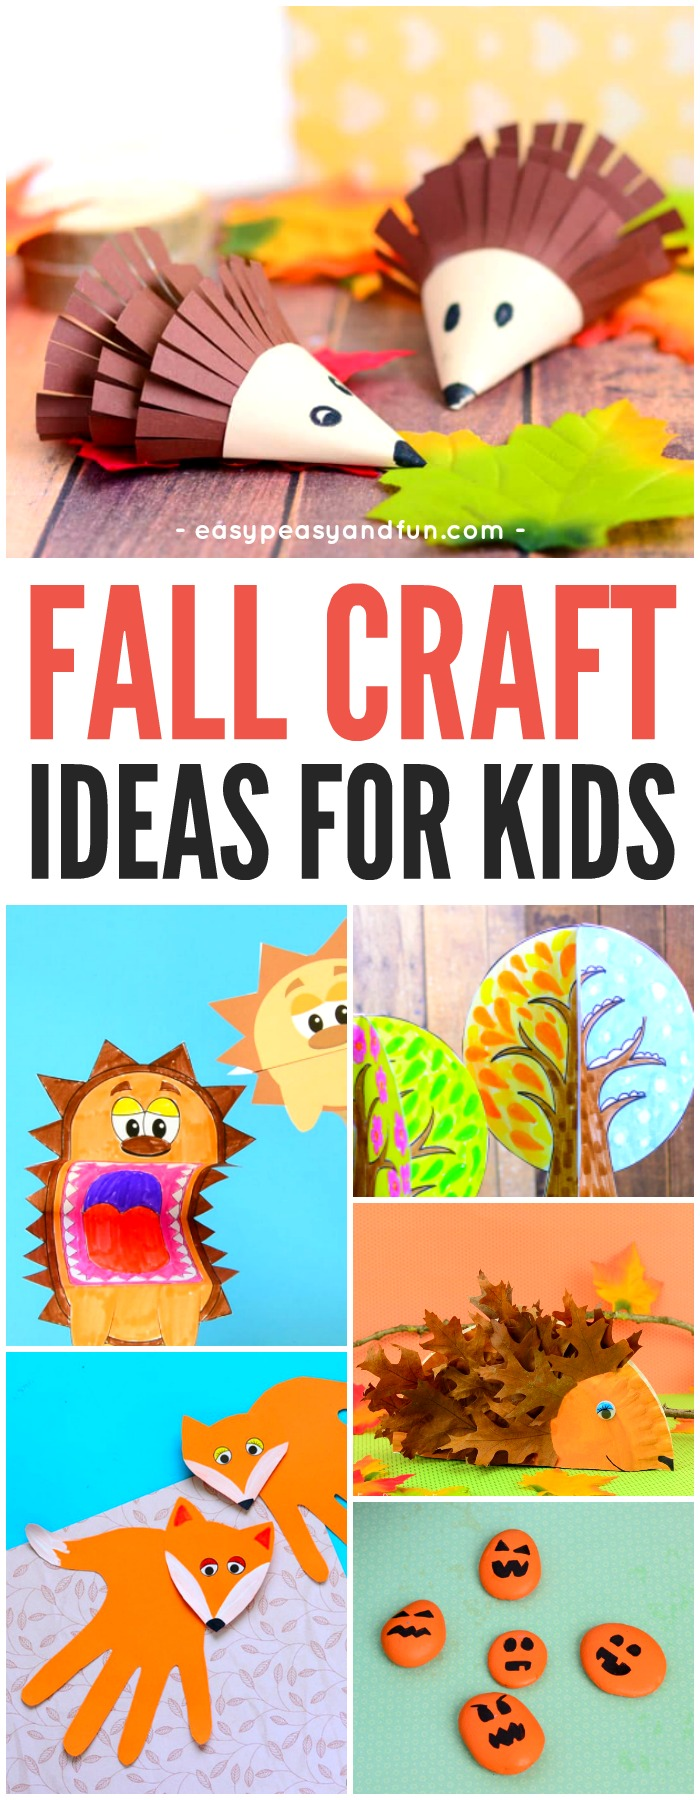 Home Depot Kids Craft Making